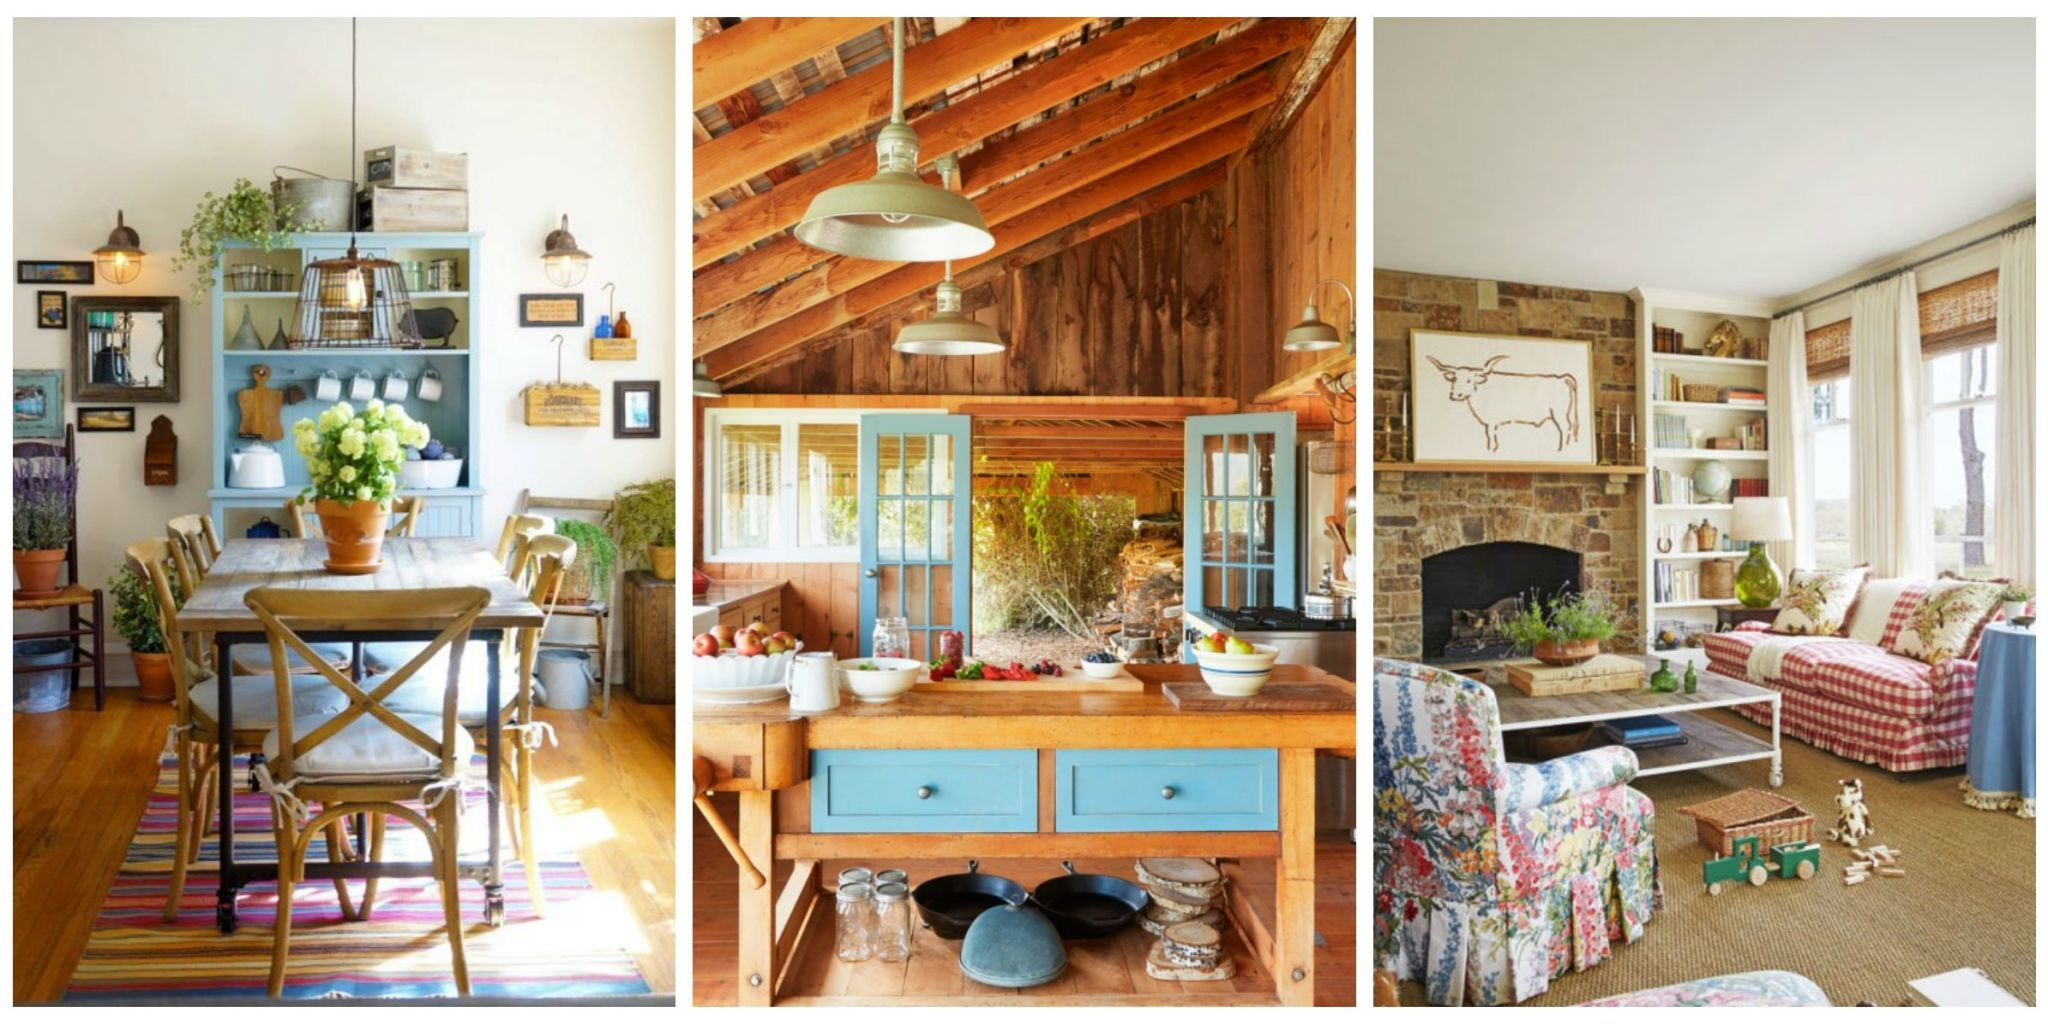 Etonnant From Bedrooms To Kitchens, These Simple And Rustic Rooms Inspire.